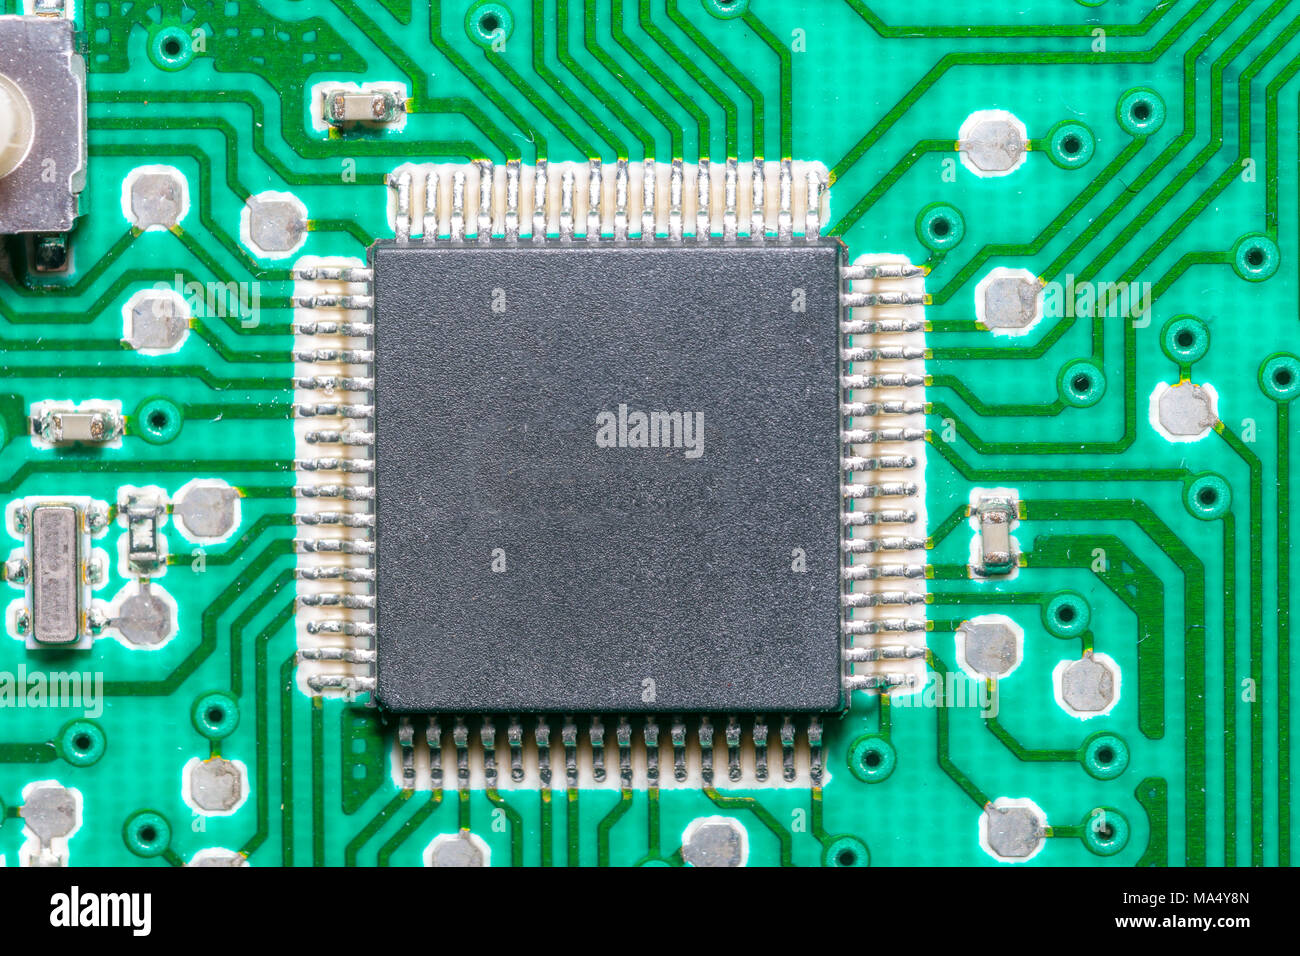 Microchip Close Up High Tech Electronic Printed Ciurcuit Board Stockfoto Circuit Pcb Used In Industrial Technology Concept